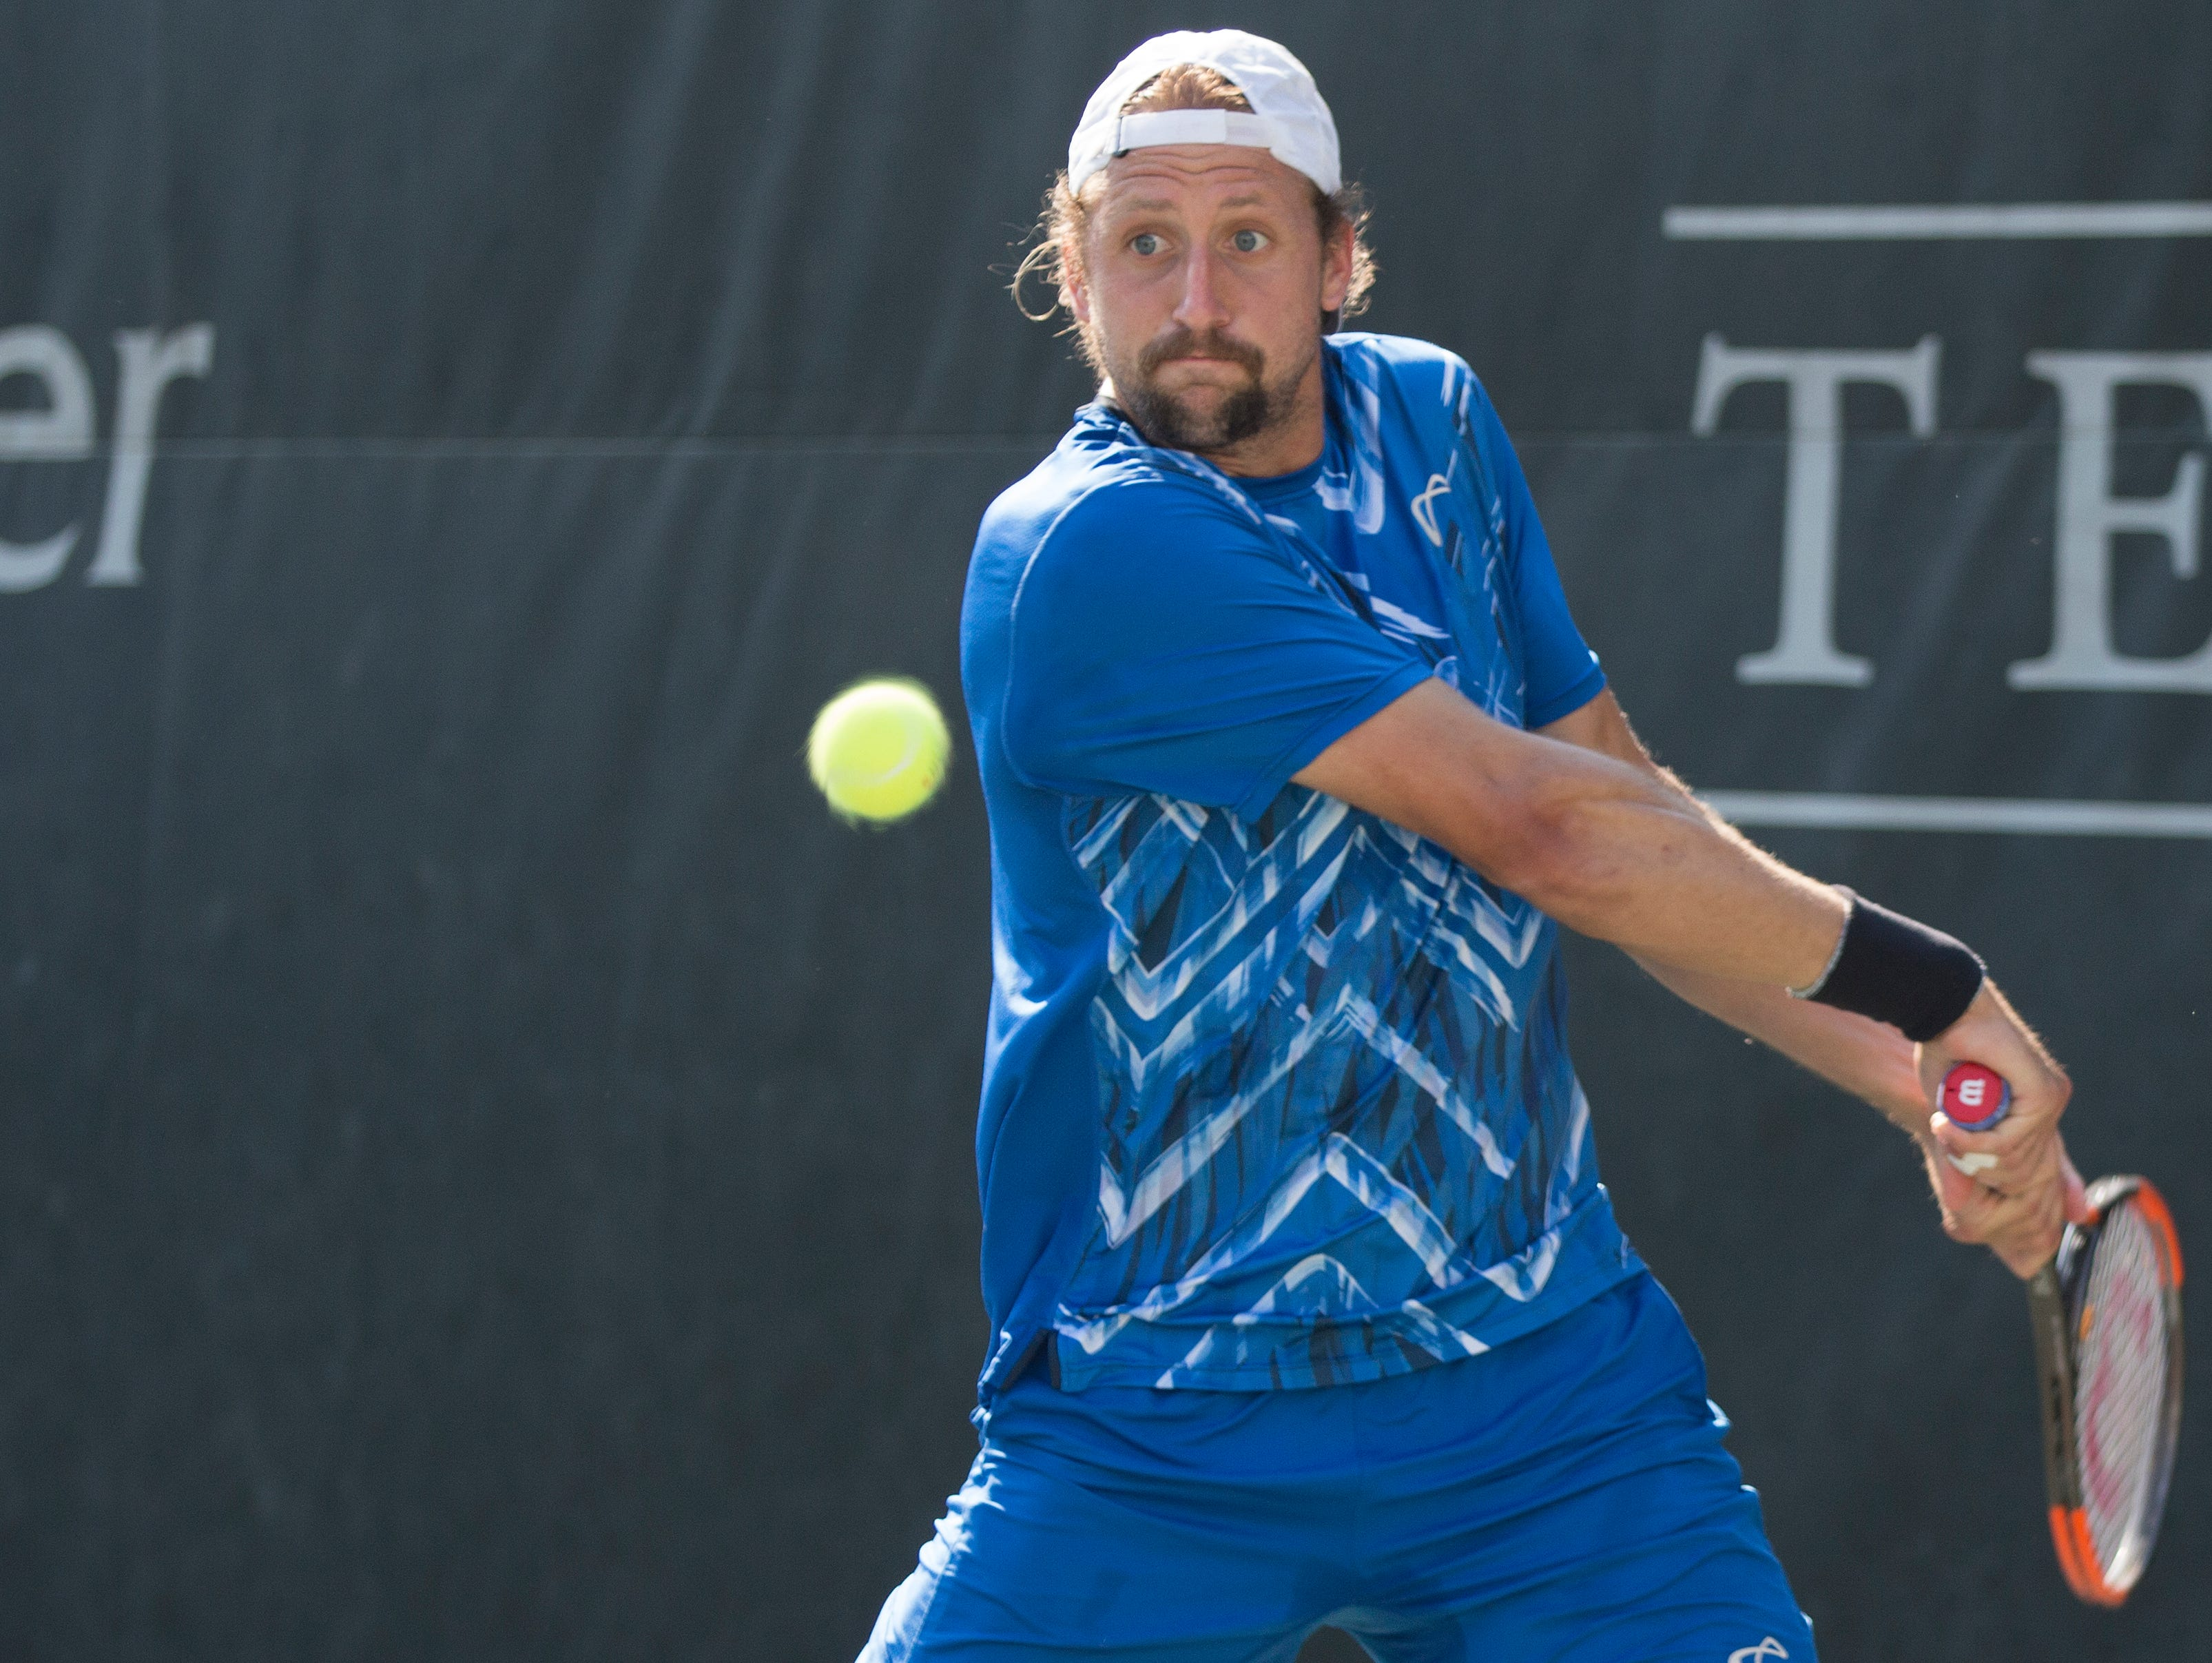 Former Vol tennis player Tennys Sandgren earned a wild card into the main draw of the French Open by winning the Roland Garros Wild Card Challenge.